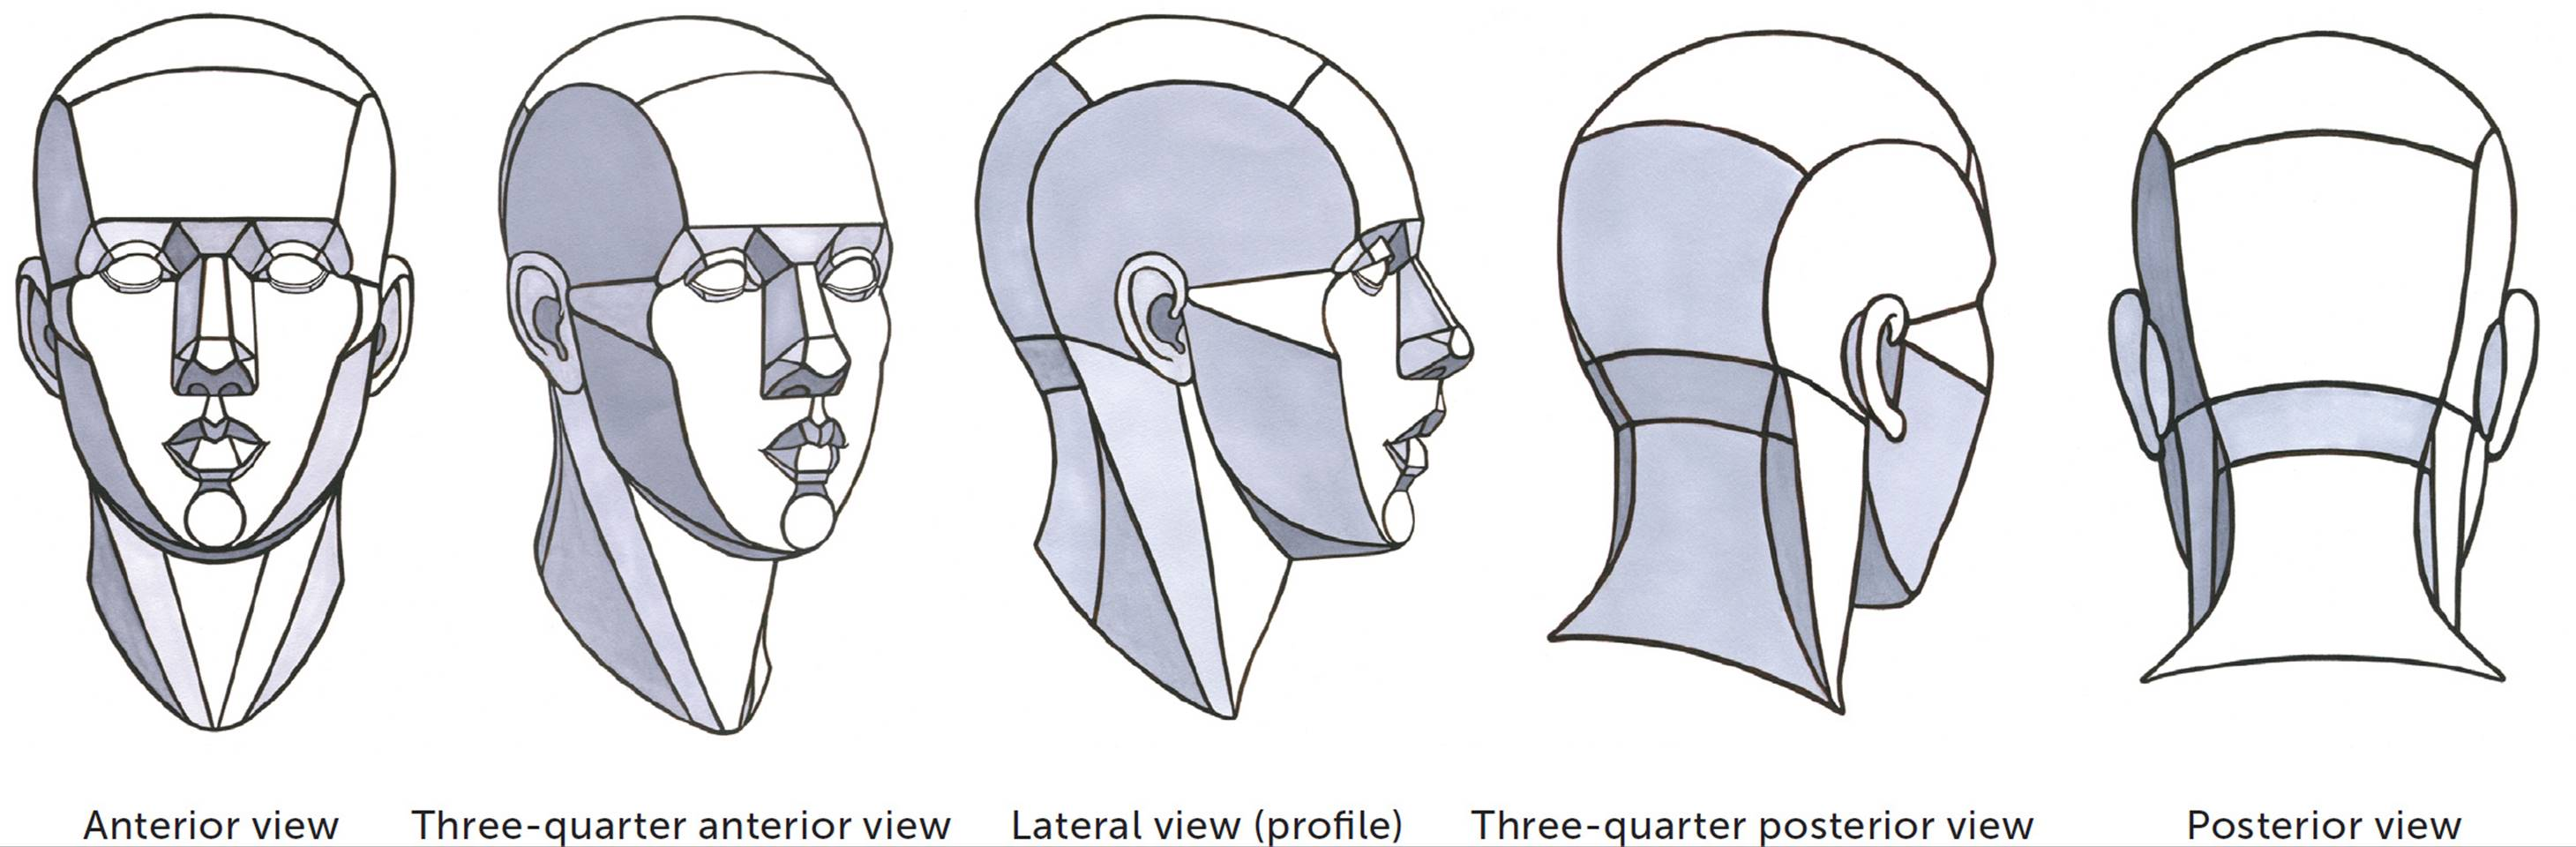 Structures And Planes Of The Figure Classic Human Anatomy In